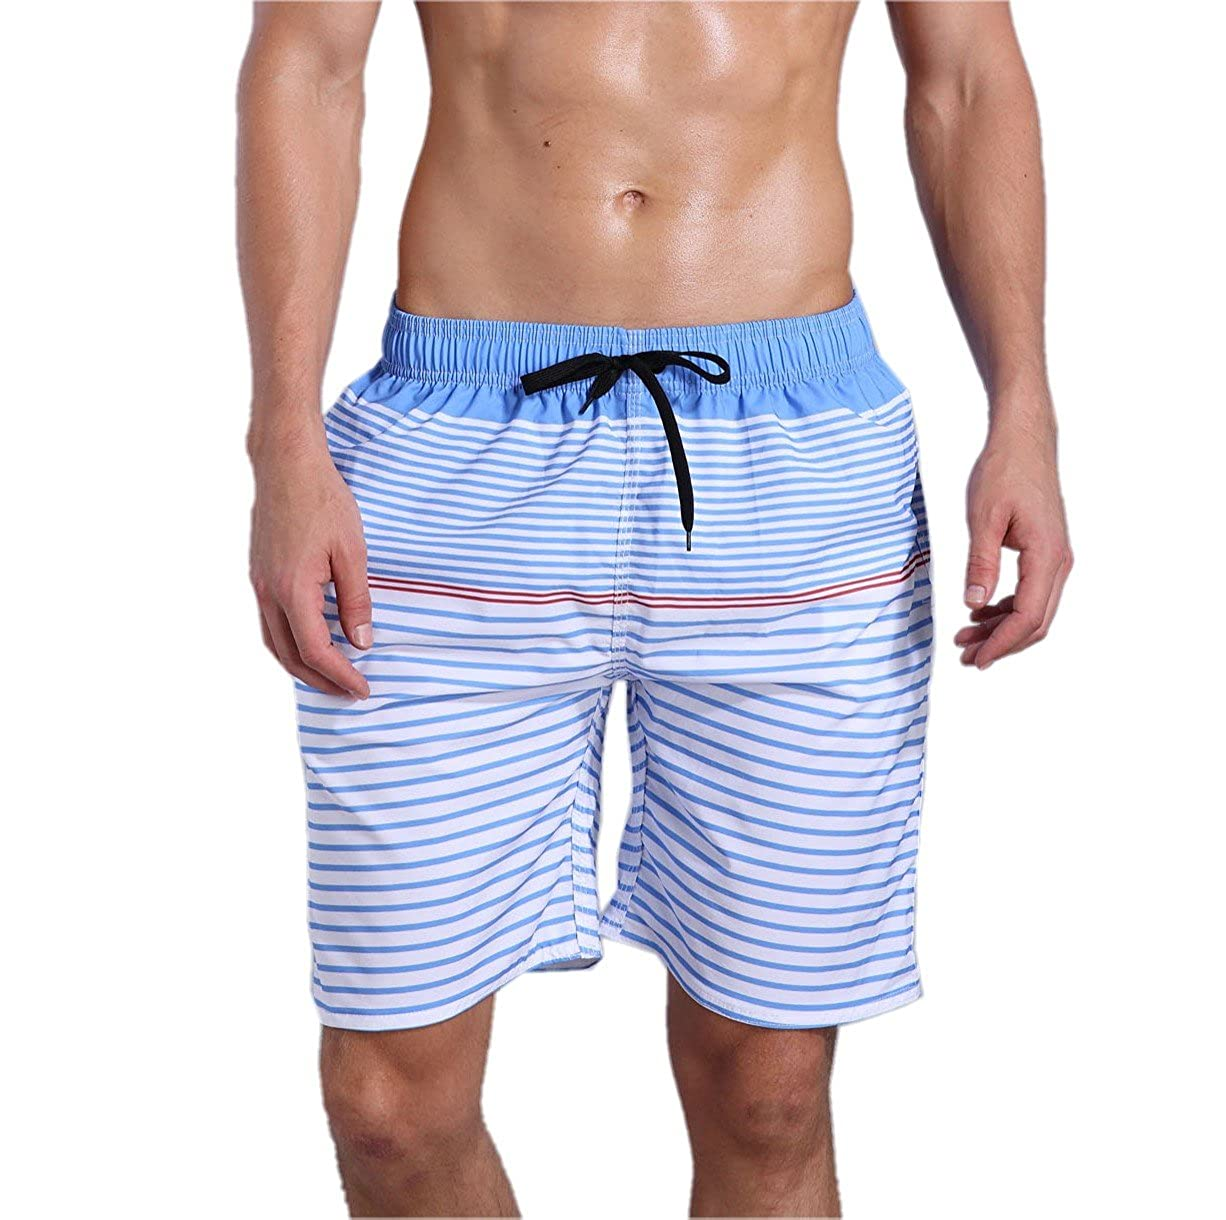 d32b4d5e7c Sports Outdoor recreation Outdoor Clothing men Water Sports Shorts closure.  Material:Striped Swim Trunk-Four Way Strech,Flamingo Printed Swim  Trunk&Colorful ...